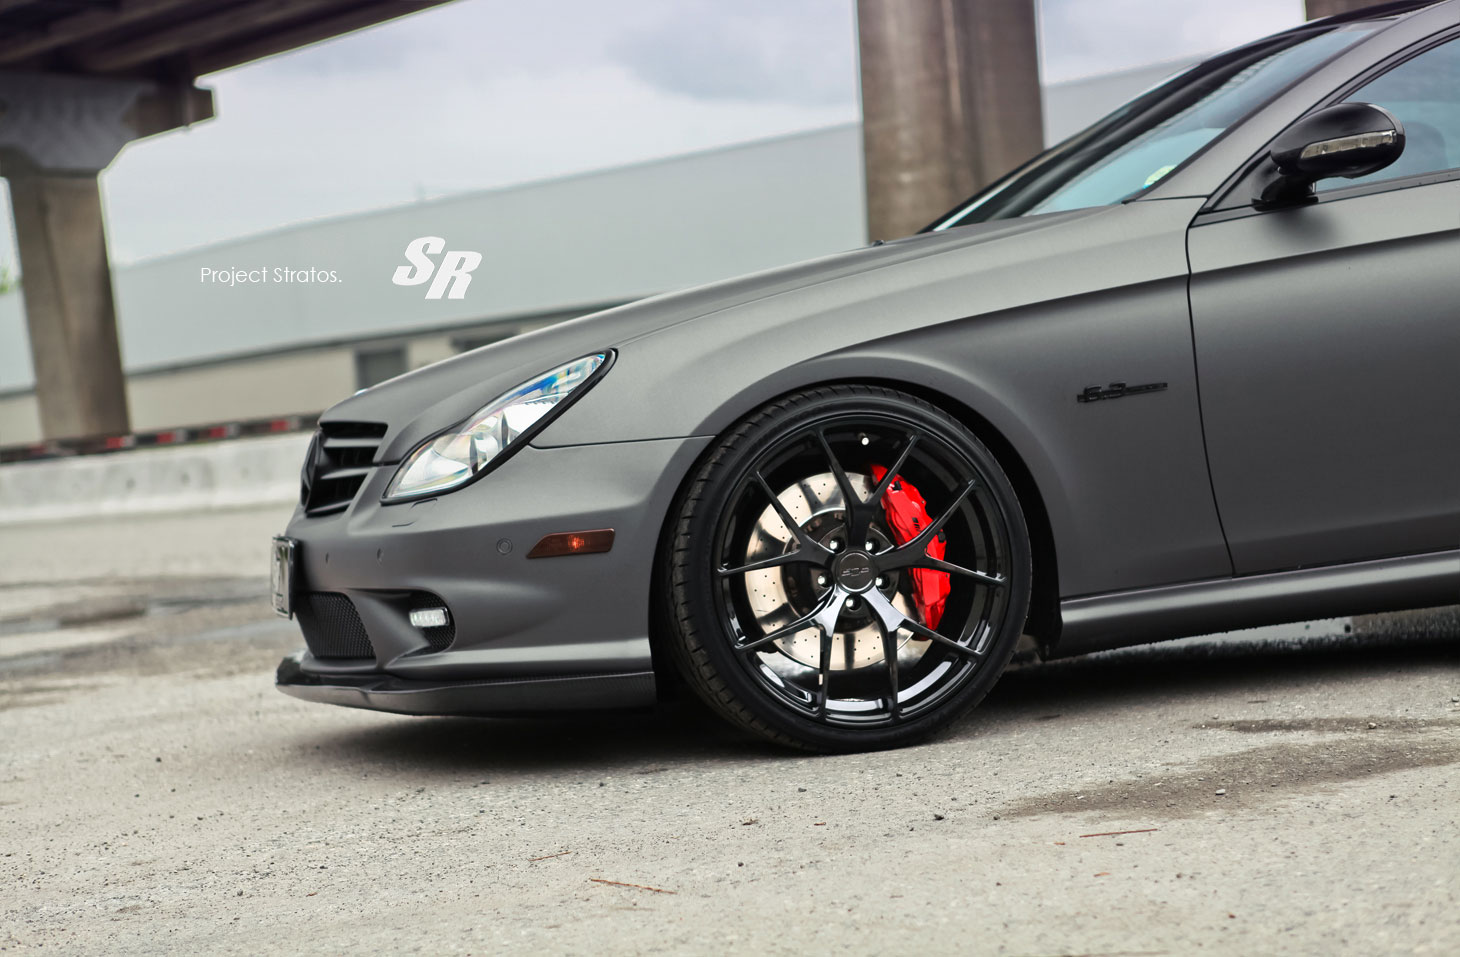 Mercedes-Benz CLS63 AMG jako Project Stratos 5